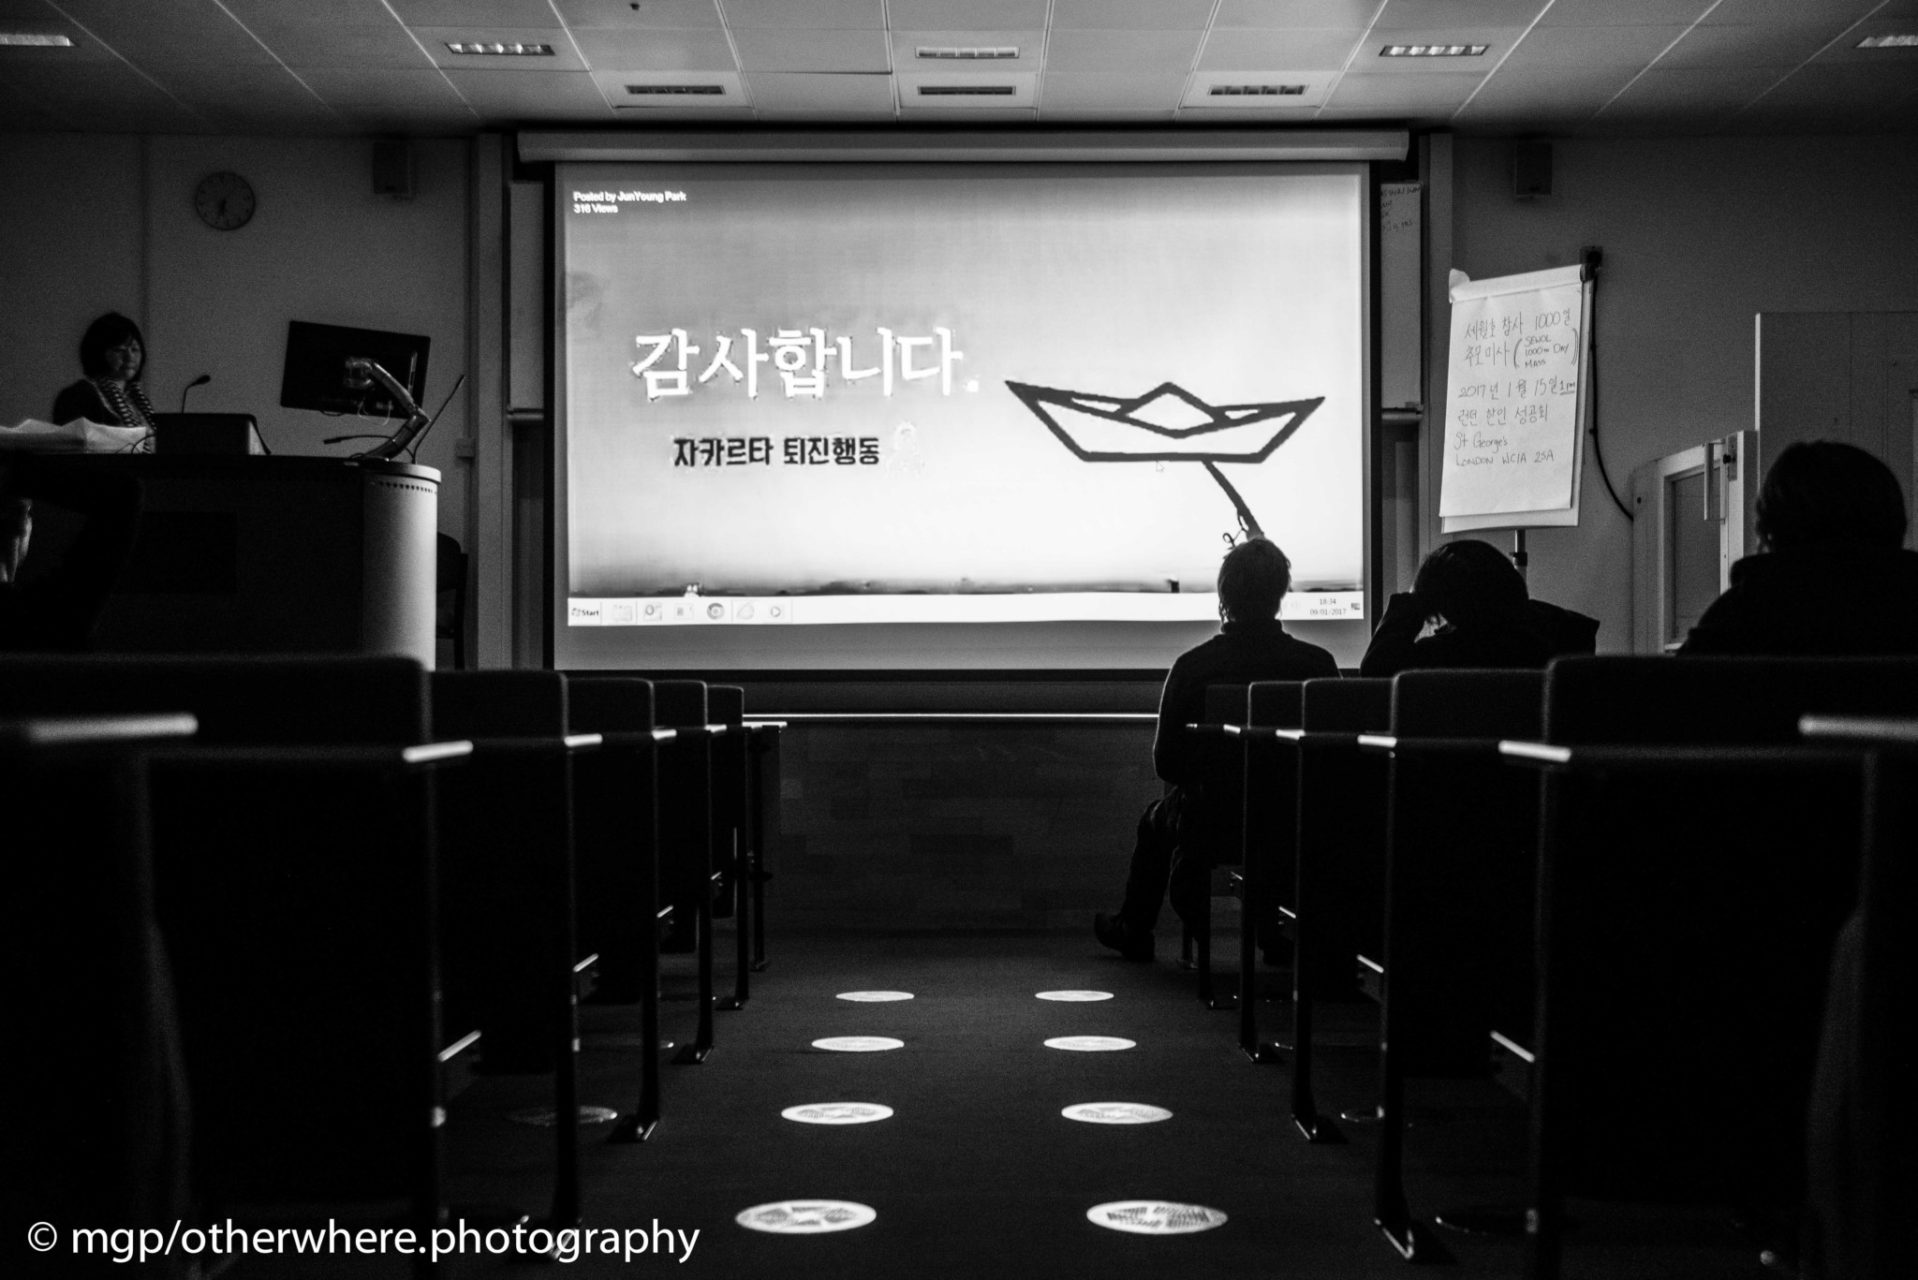 London, UK (January 2017): On January 9th, 2017 one thousand days have passed since the MV Sewol sank. The London group marks the anniversary by screening the documentary Sewol, which is sparsely attended, in part due to a Tube strike that takes place that day.